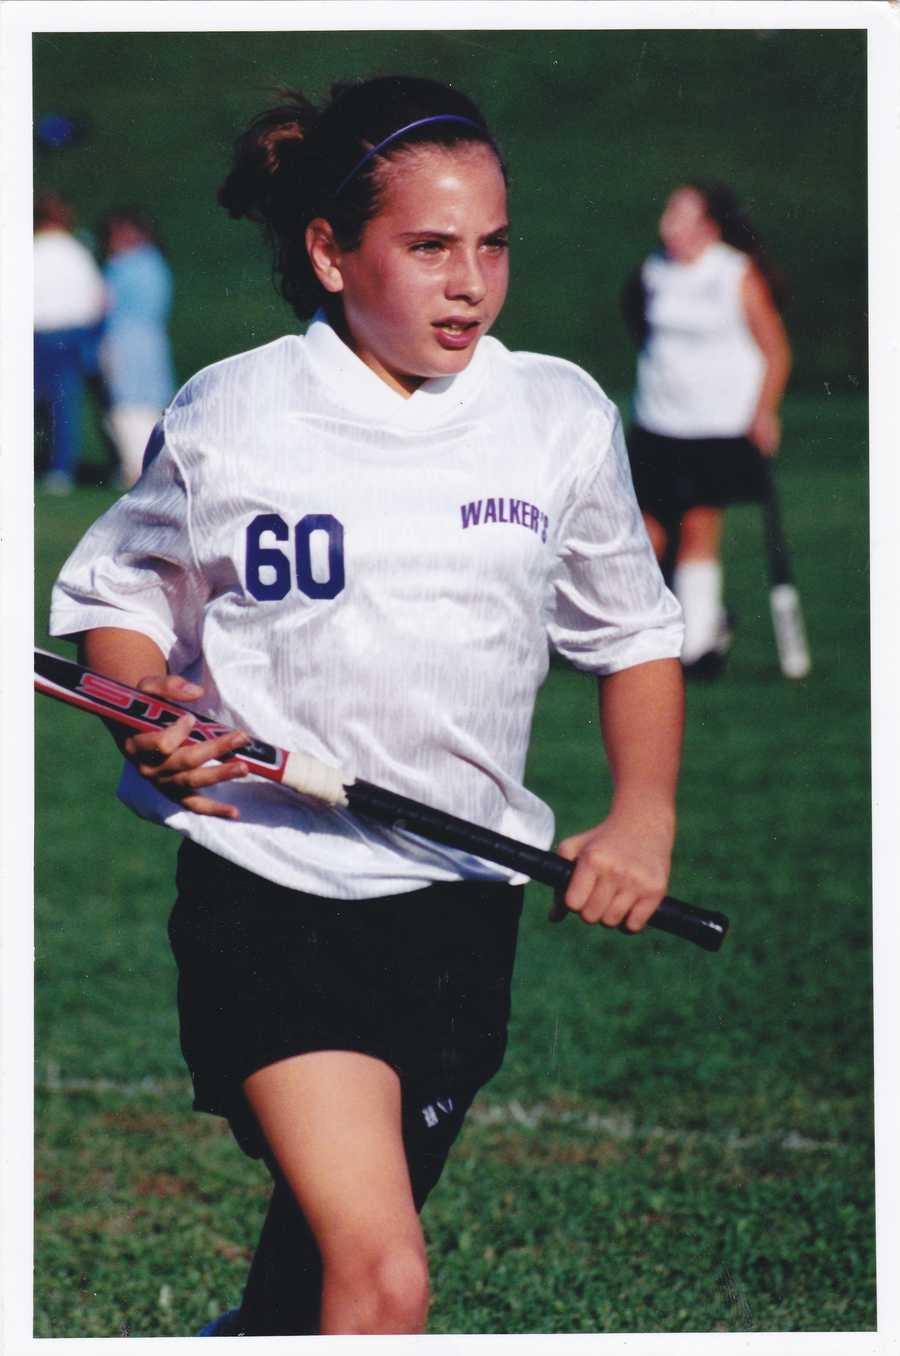 I also played field hockey throughout elementary, middle and high school. Midfield was my position of choice. I was an okay player, but what I really brought to the team was the intimidation factor-- I mean, look at that game face.